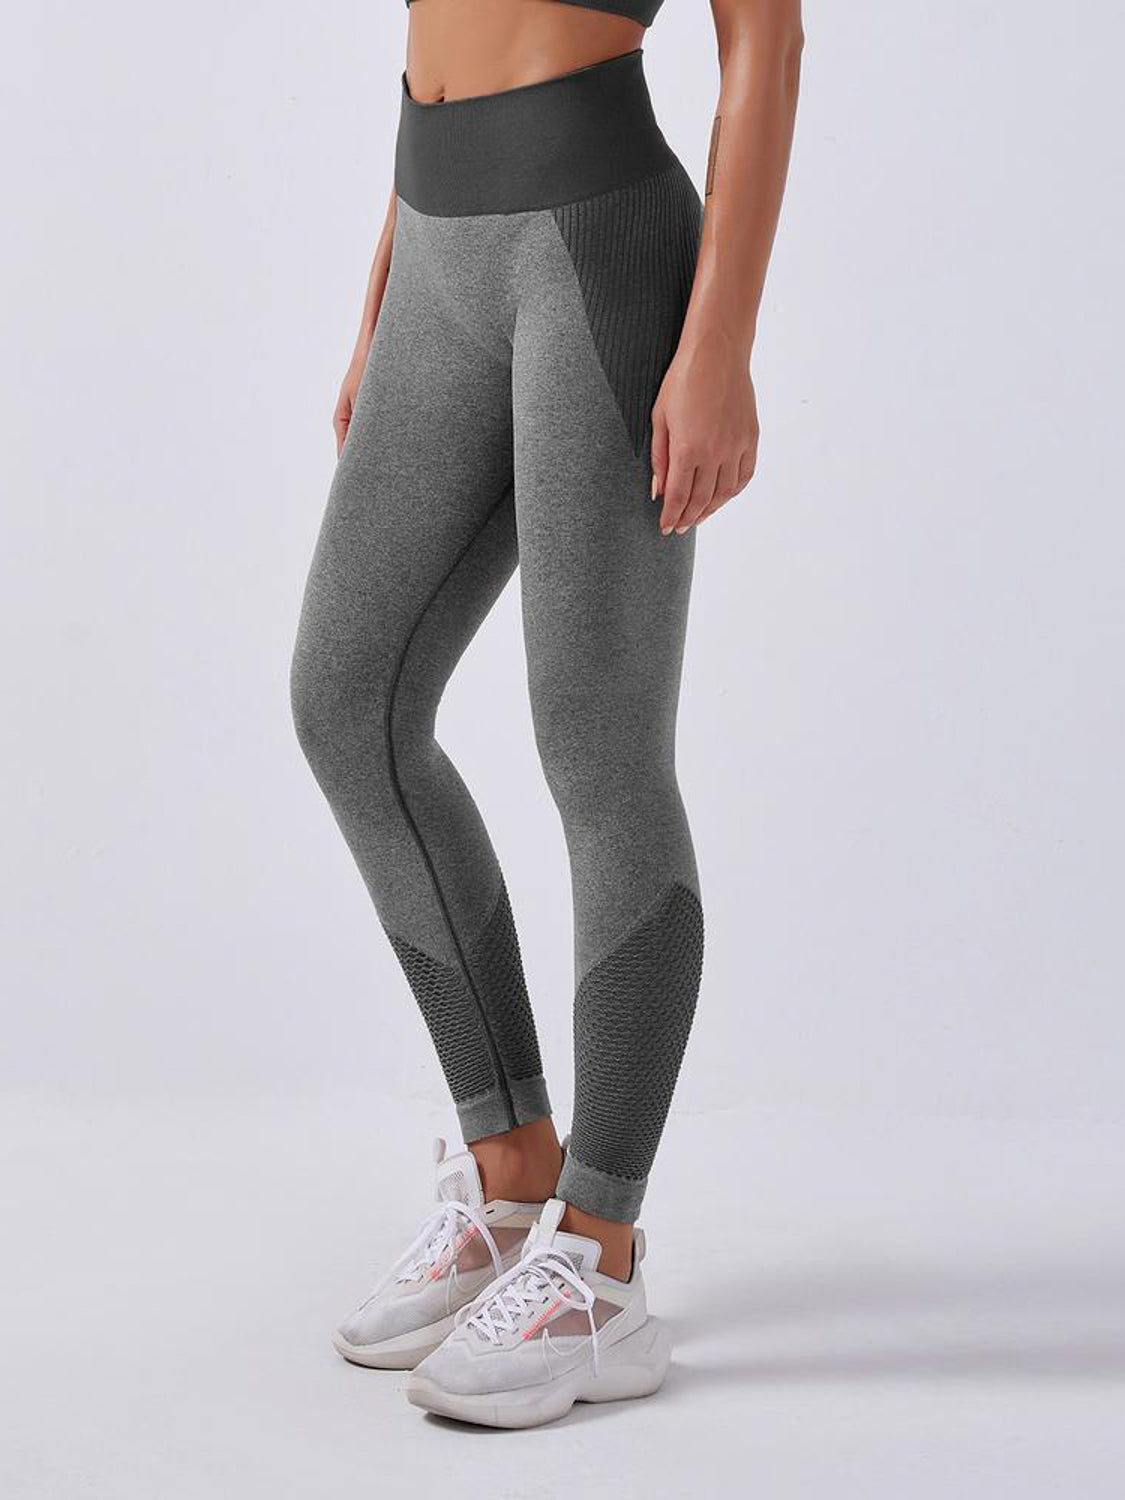 MOVI Engage Leggings - Grey/Black